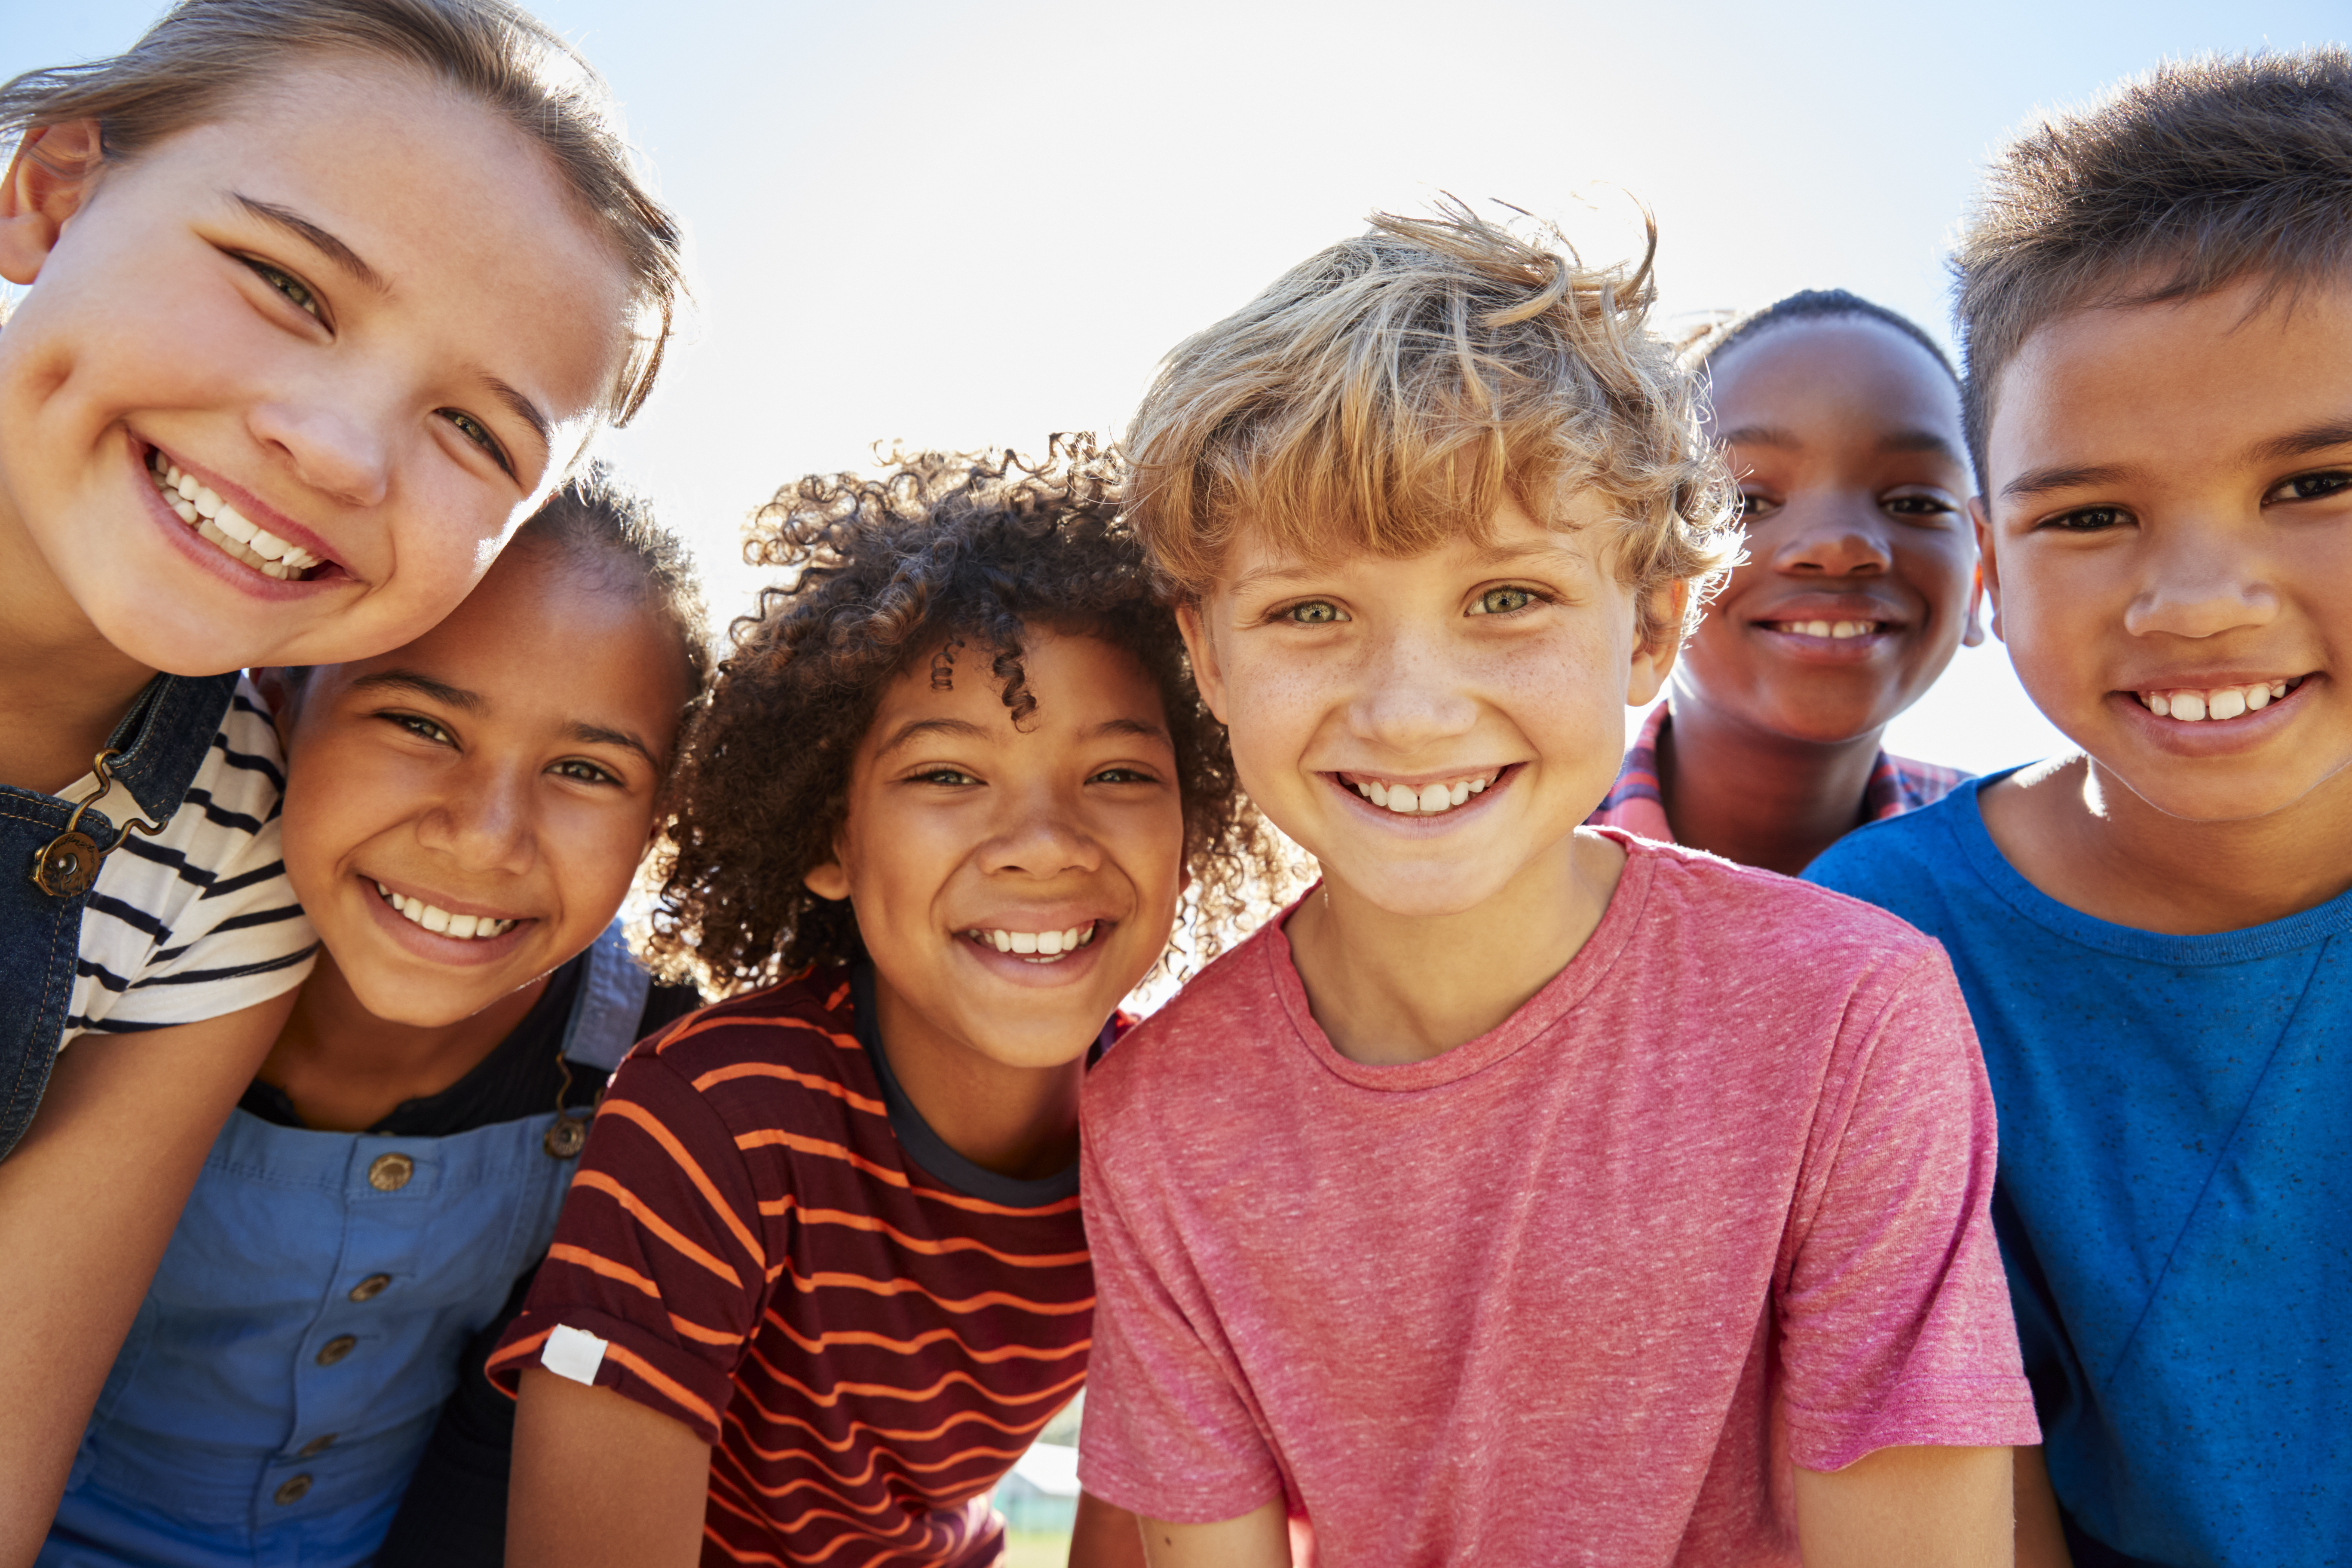 A Child's First Dental Visit to Holistic Family Dentistry